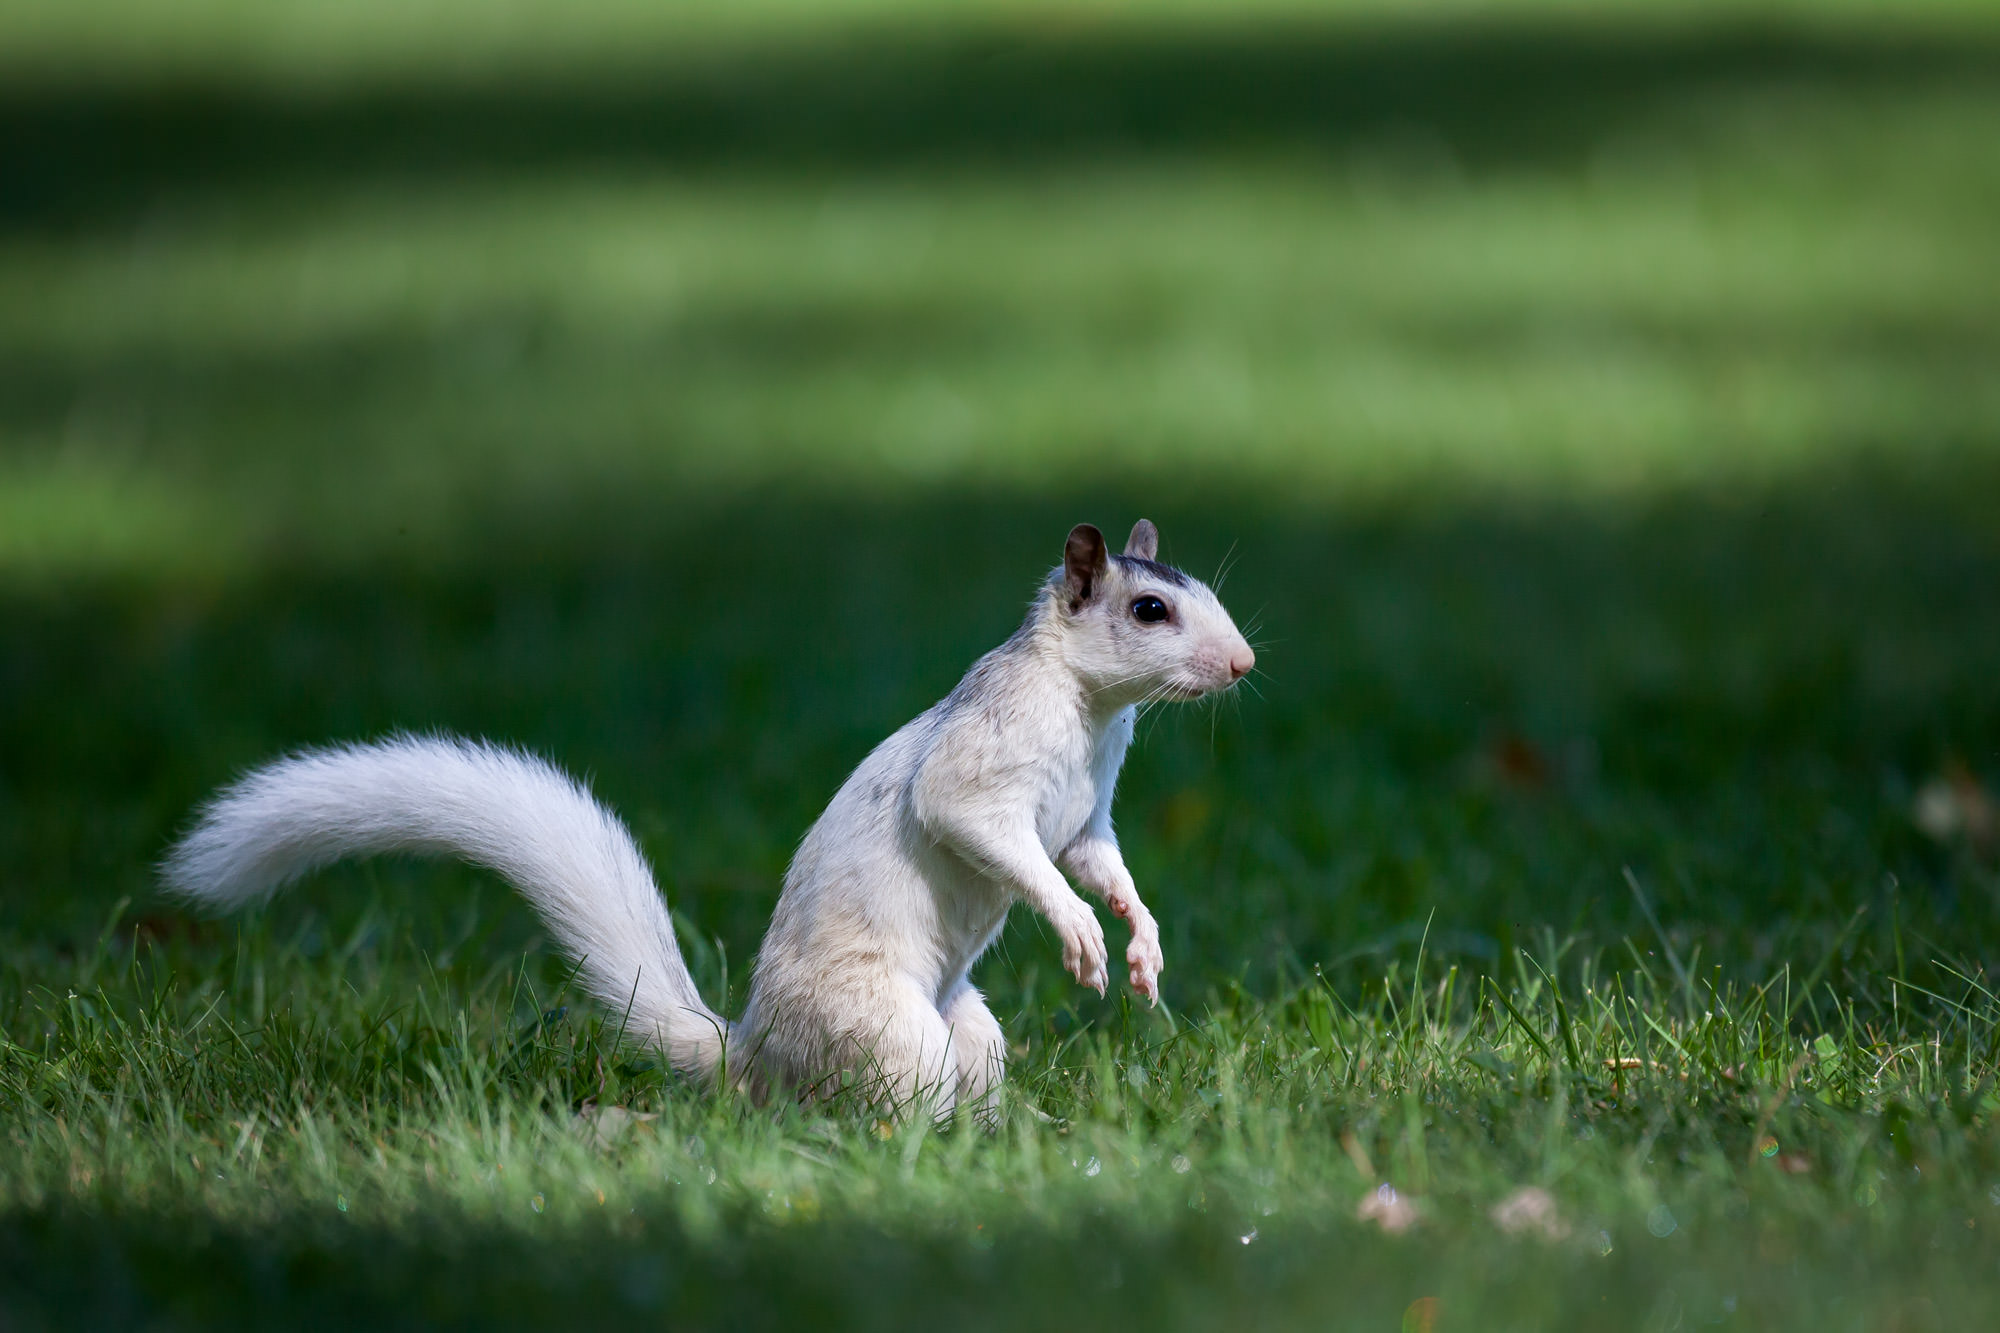 White Squirrel, North Carolina, Pisgah, Forest, limited edition, photograph, fine art, wildlife, photo